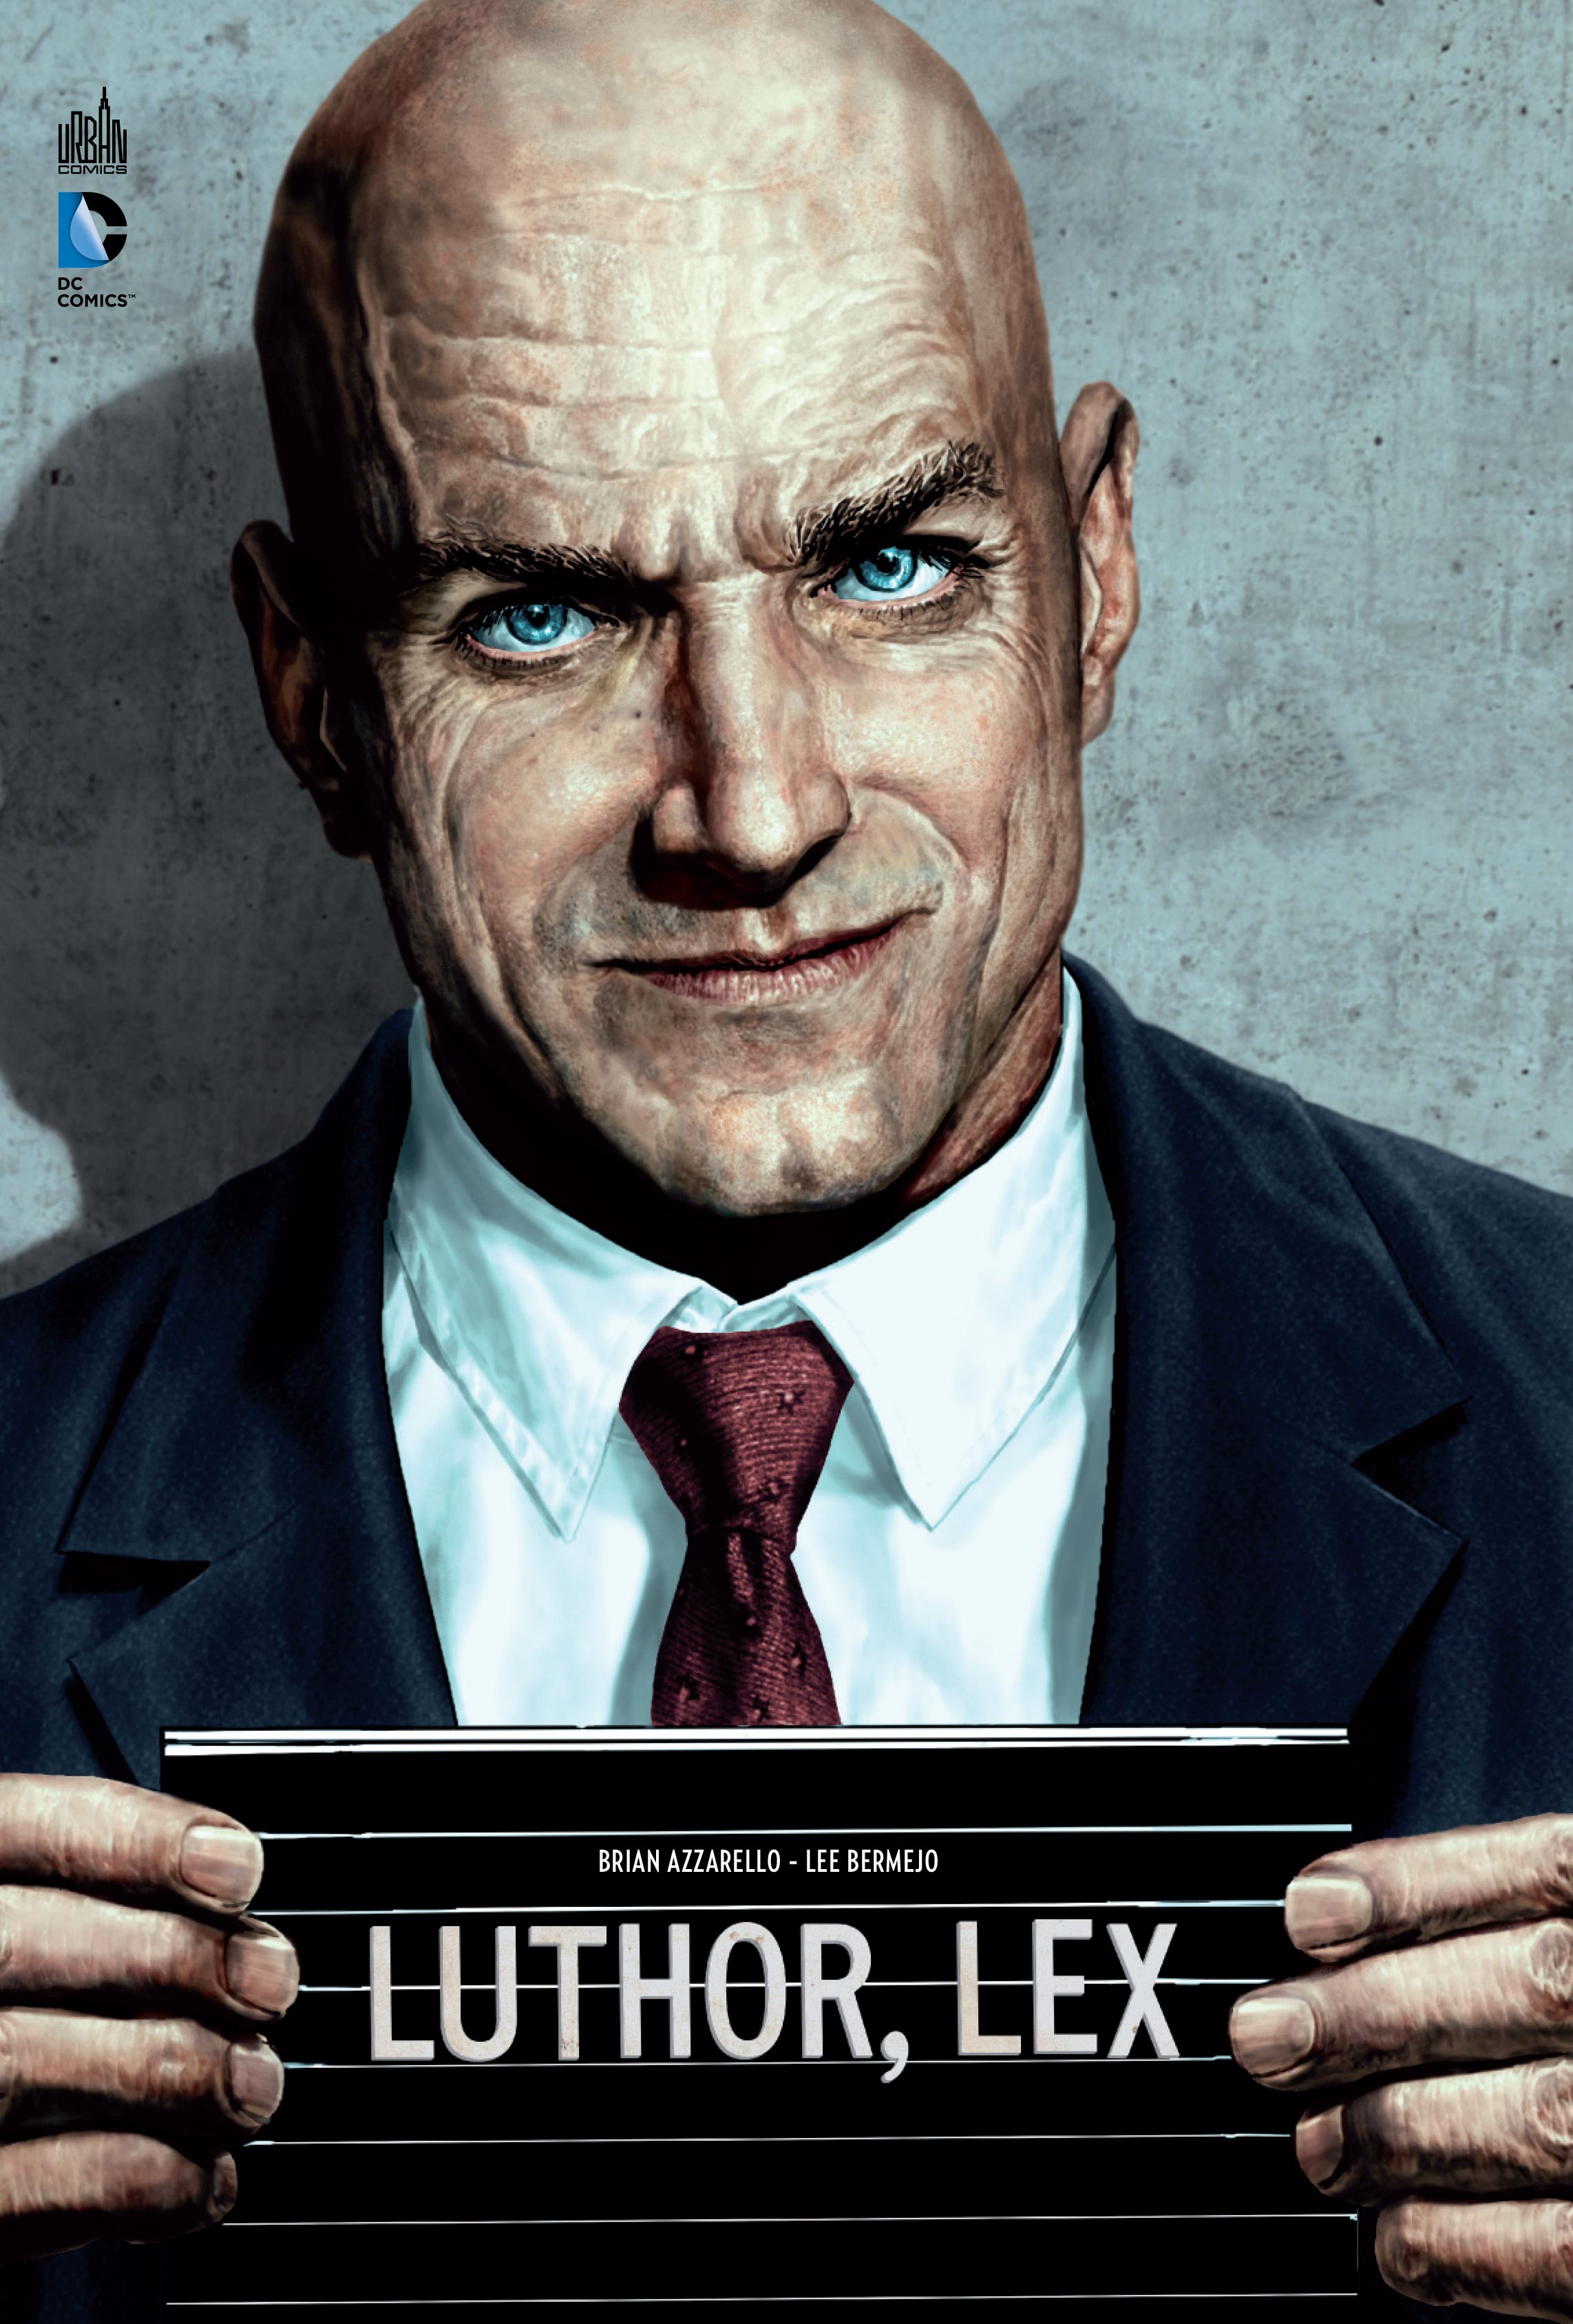 Luthor